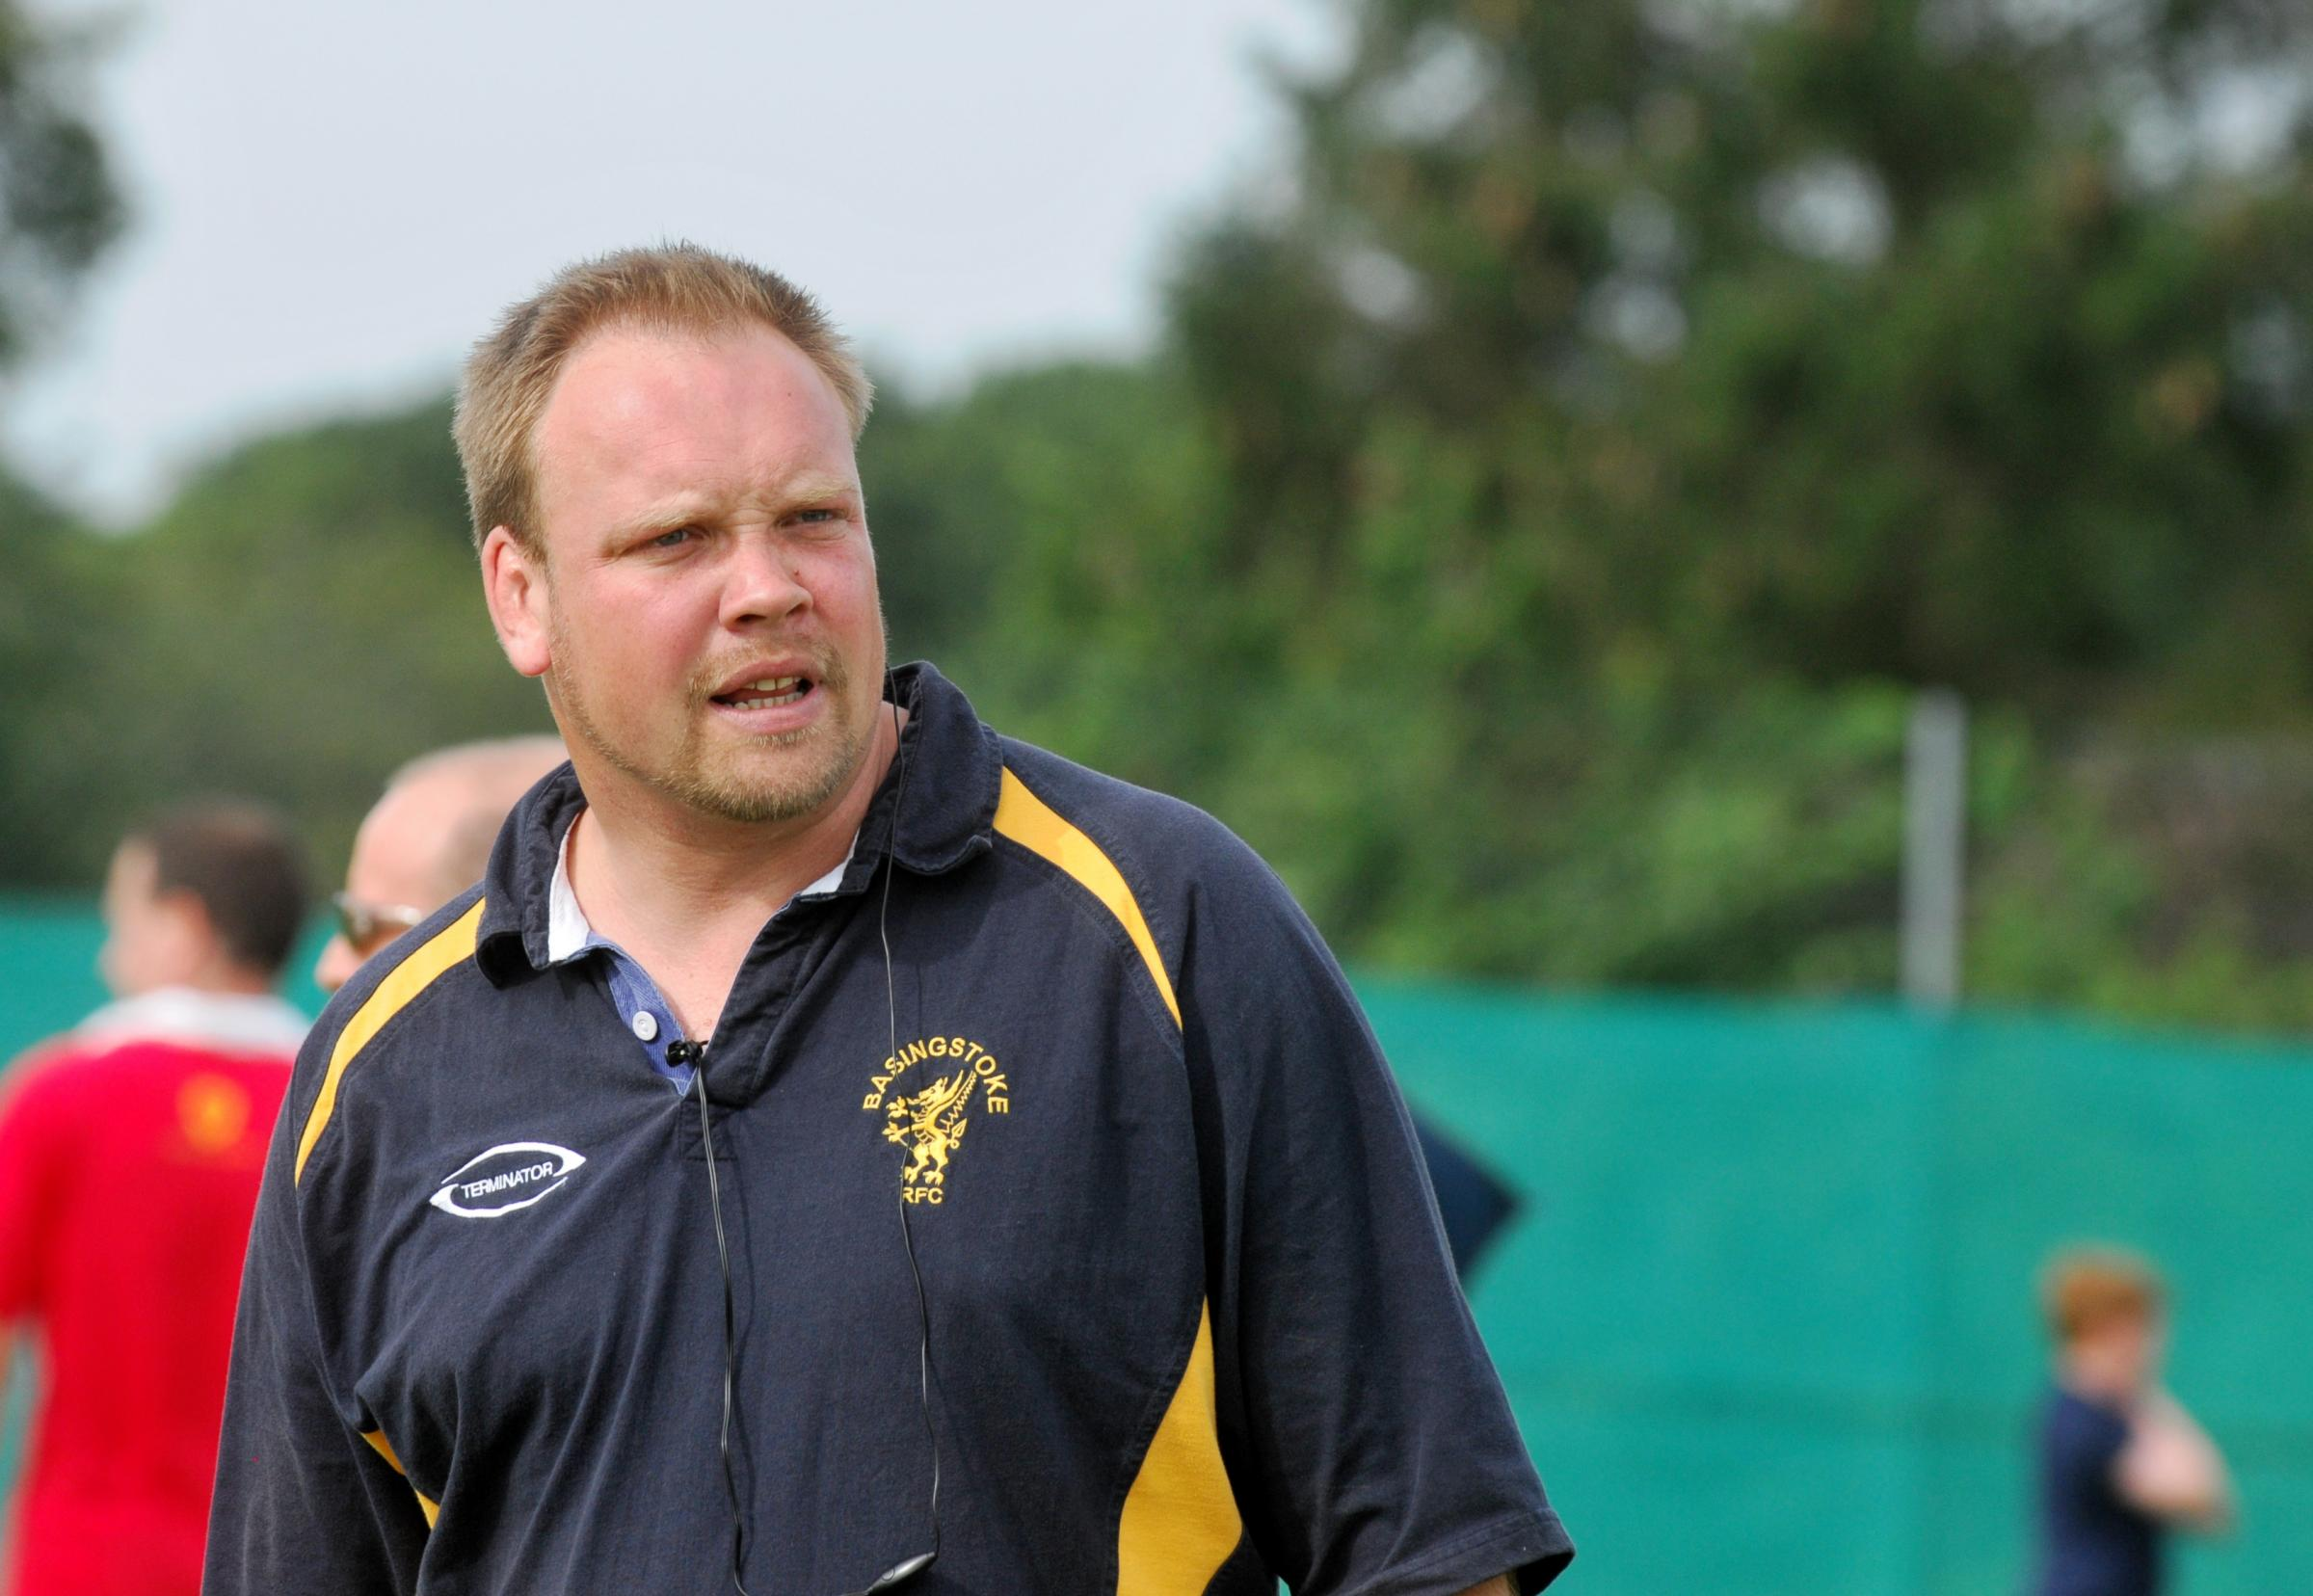 Basingstoke RFC director of rugby James Croker